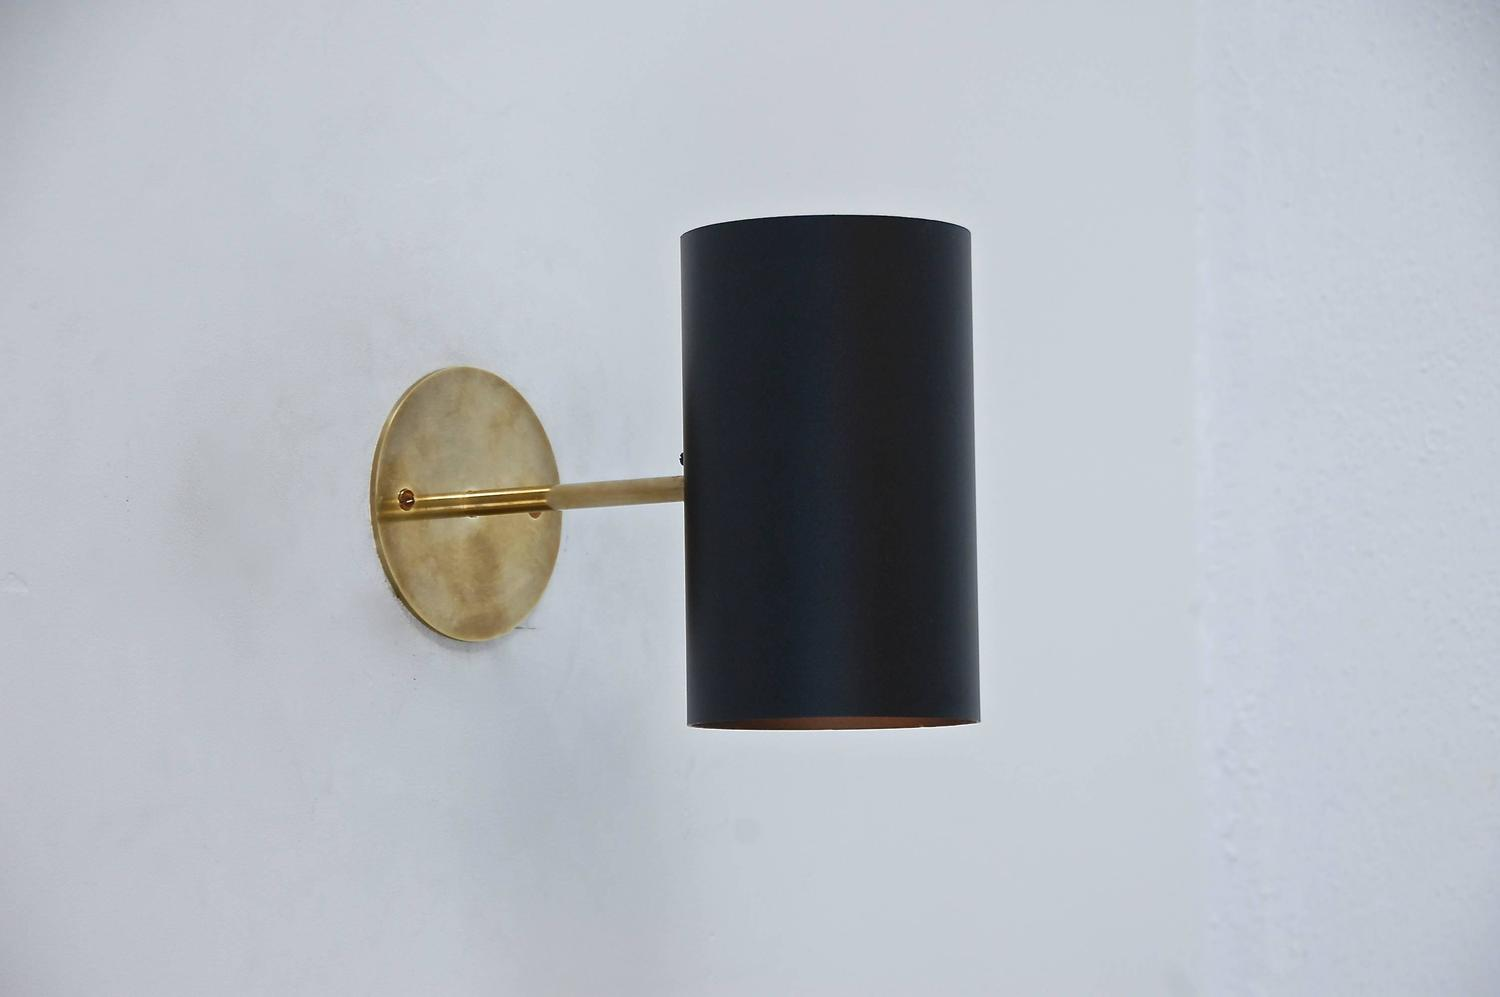 Boris lacroix black cylinder sconces at 1stdibs - Cylindrical wall sconce ...